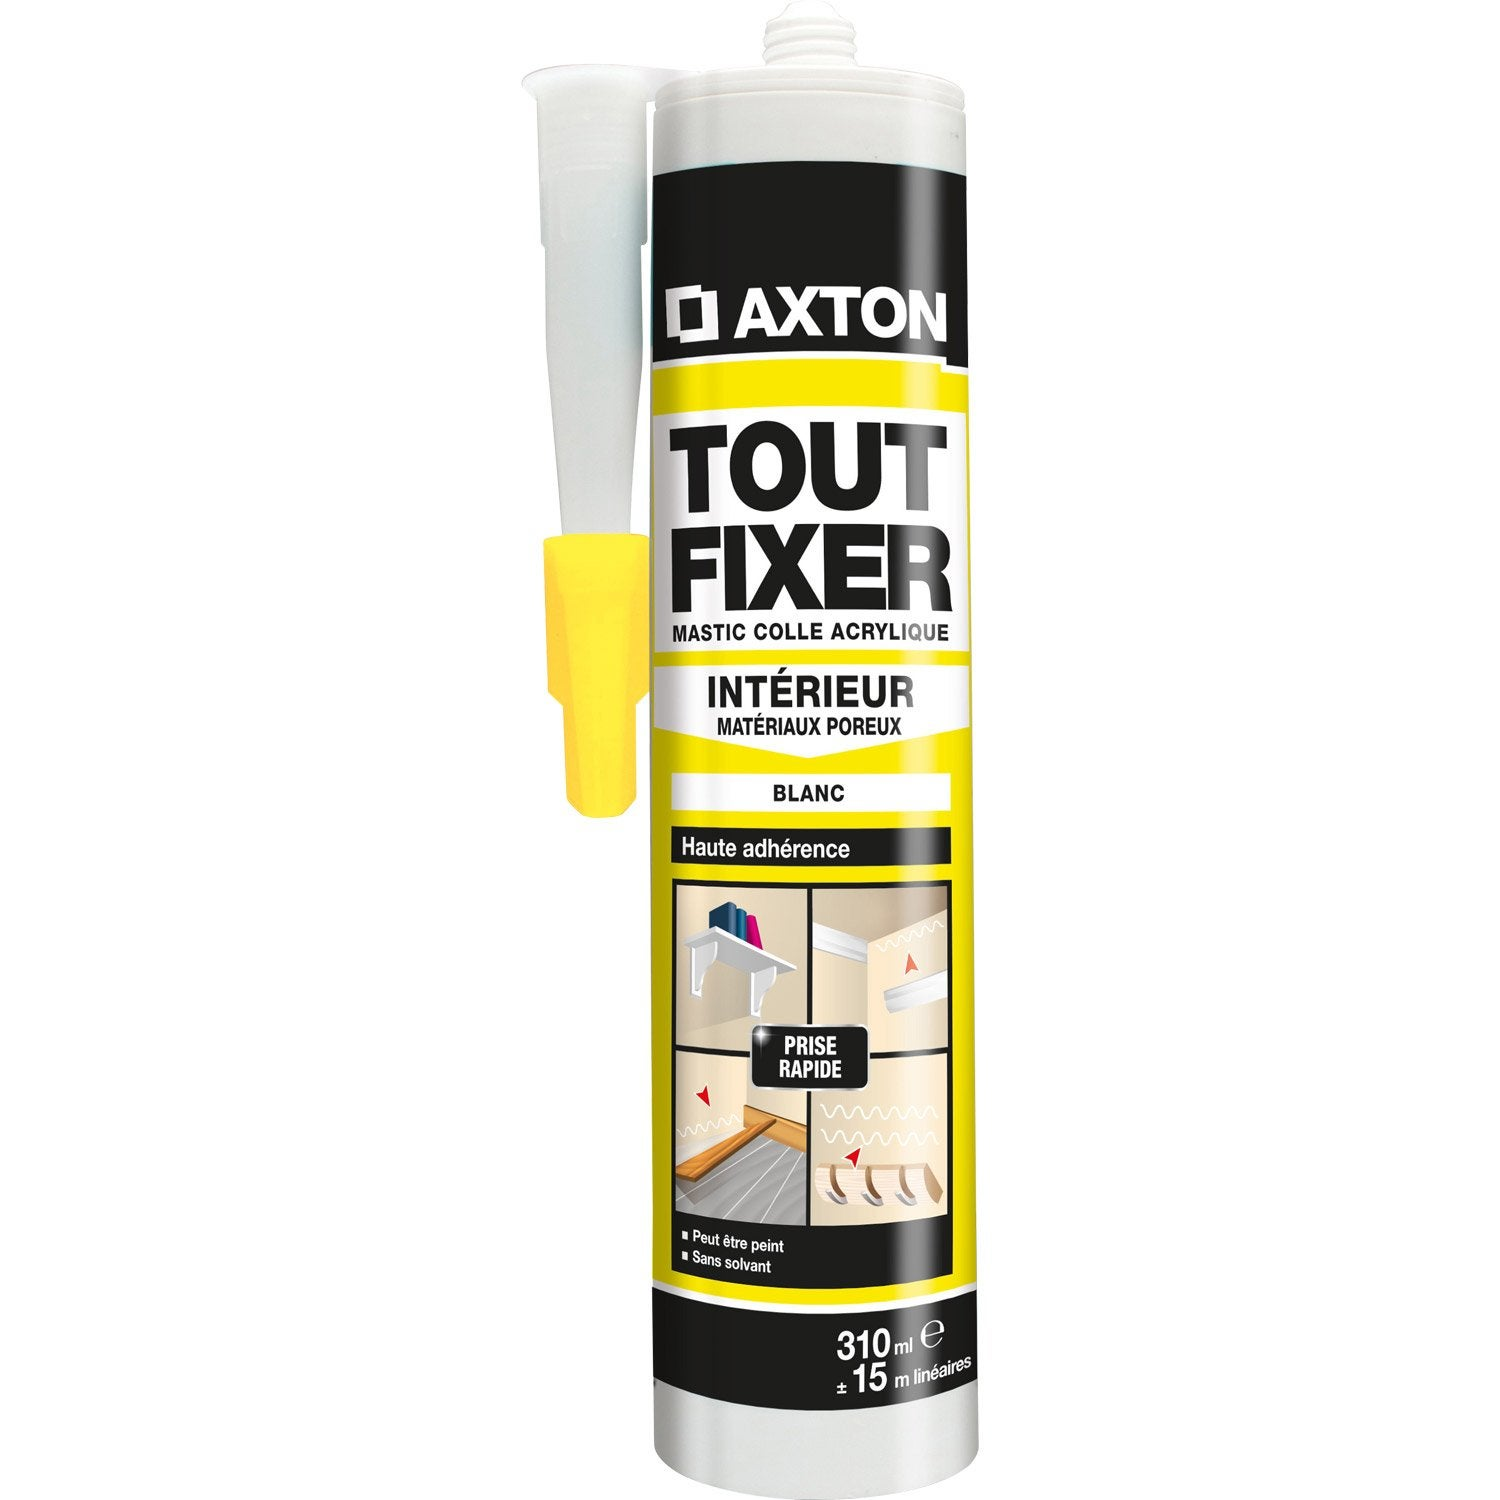 Colle mastic tout fixer axton 310 ml leroy merlin - Colle bois leroy merlin ...